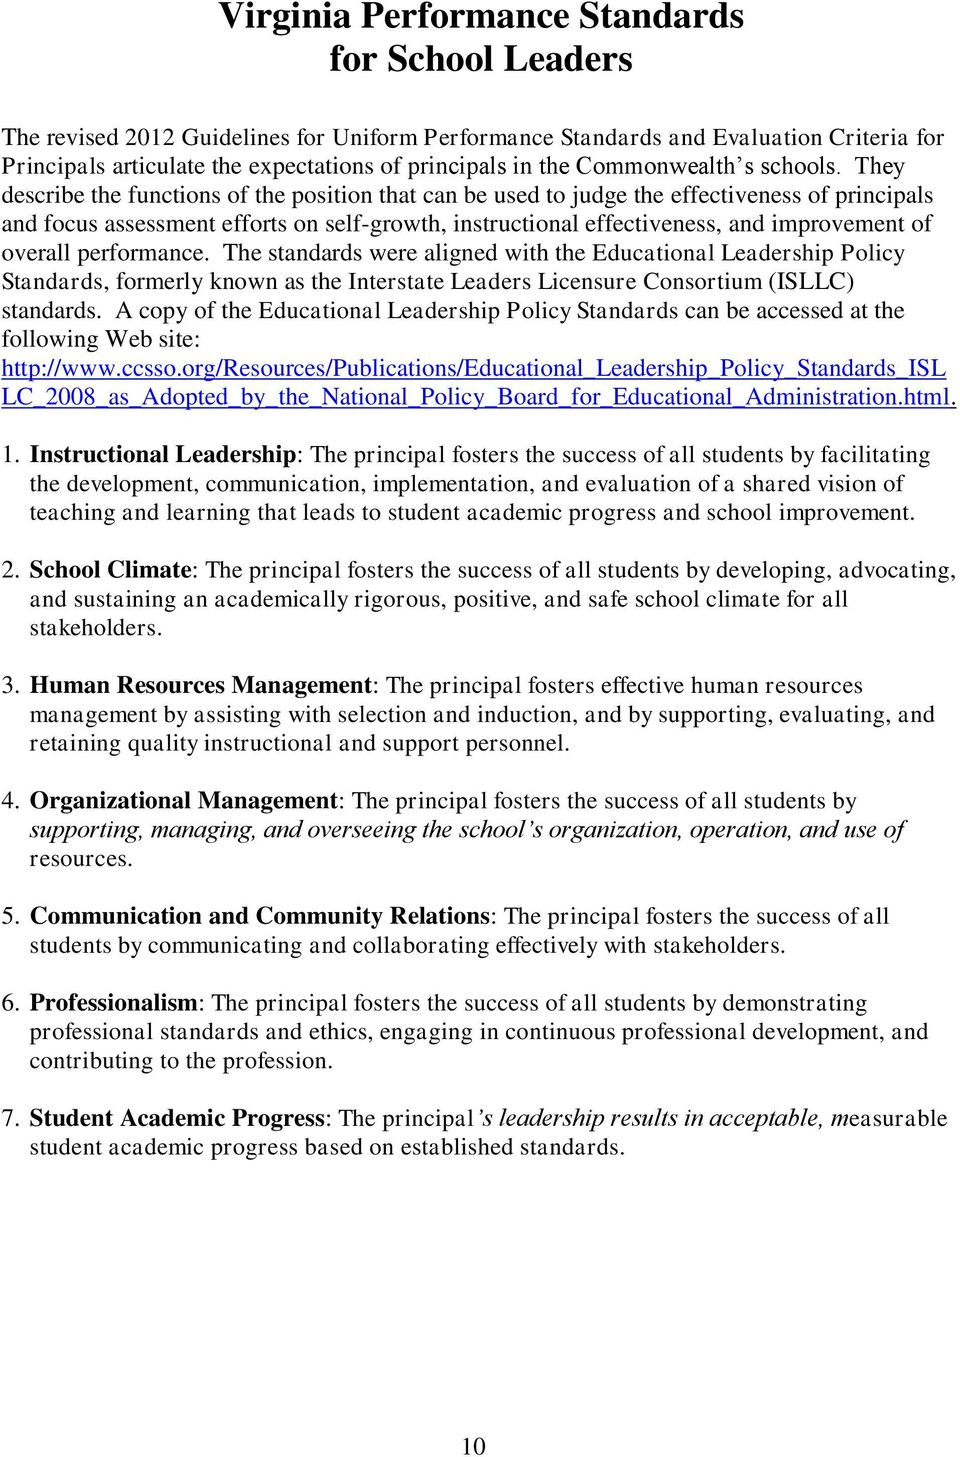 They describe the functions of the position that can be used to judge the effectiveness of principals and focus assessment efforts on self-growth, instructional effectiveness, and improvement of